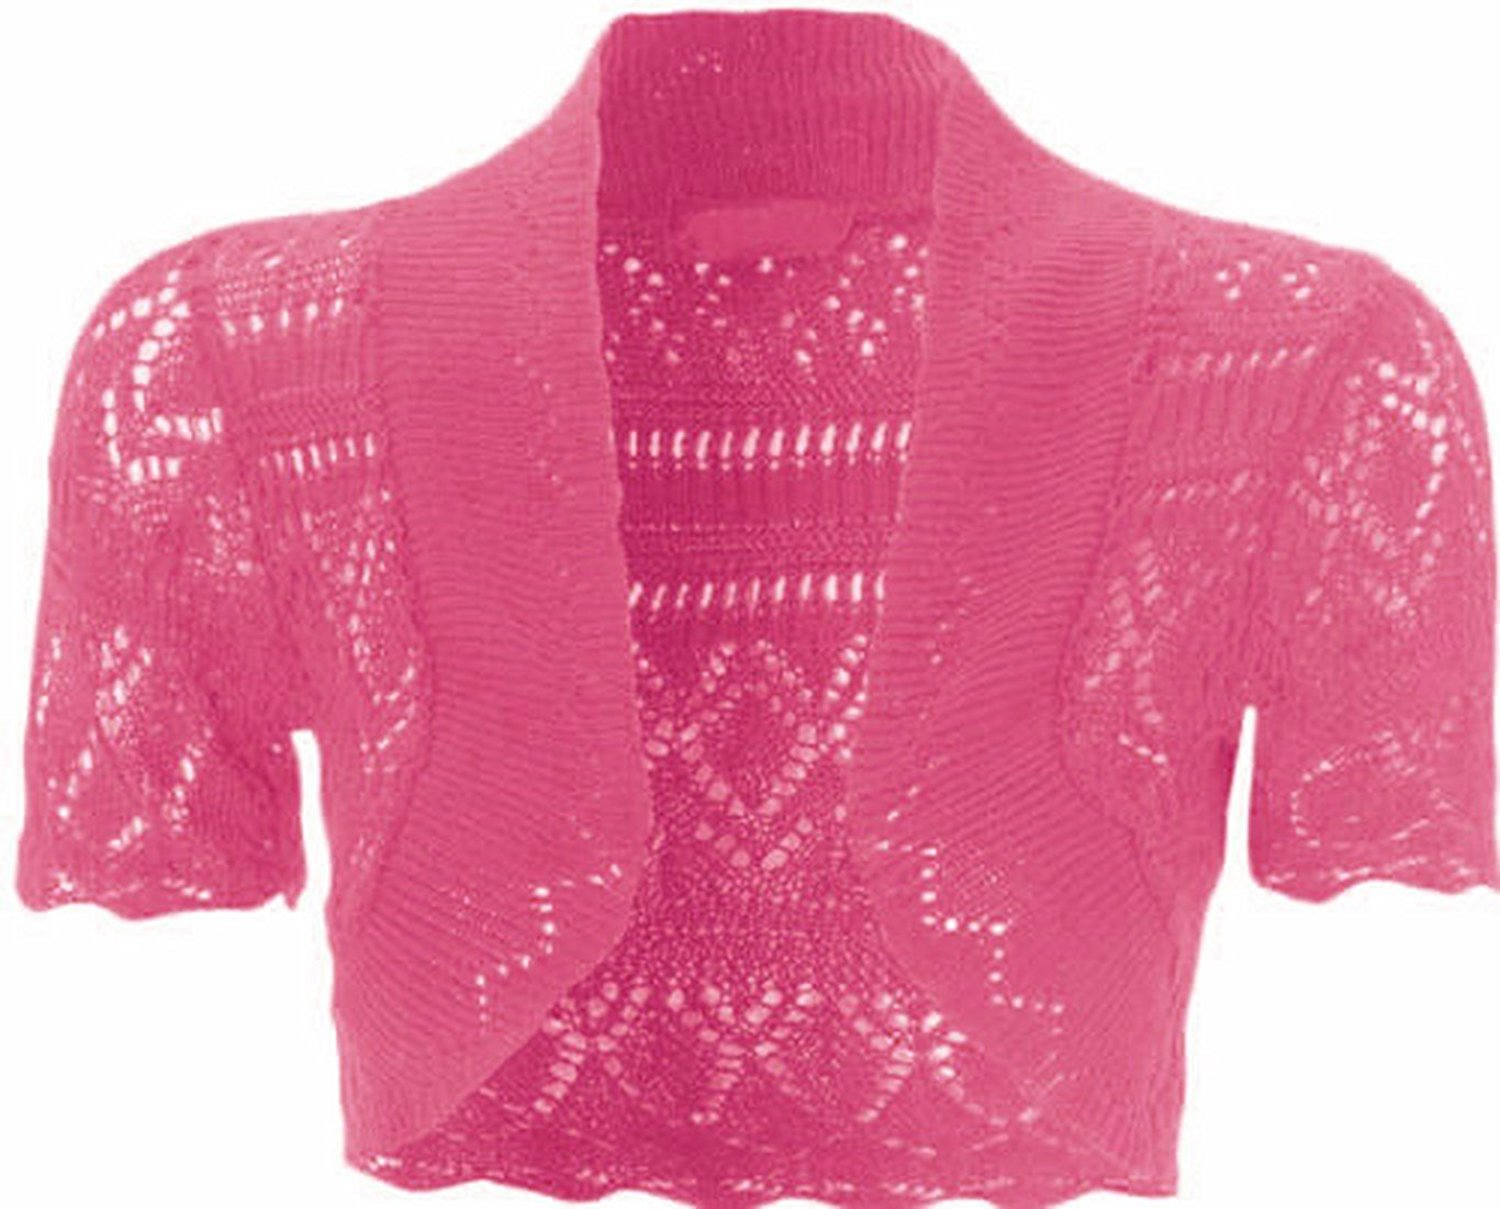 4a1660f89a0 Get Quotations · Womens Knitted Bolero Shrug Short Sleeve Crochet Shrug  (Cerise)